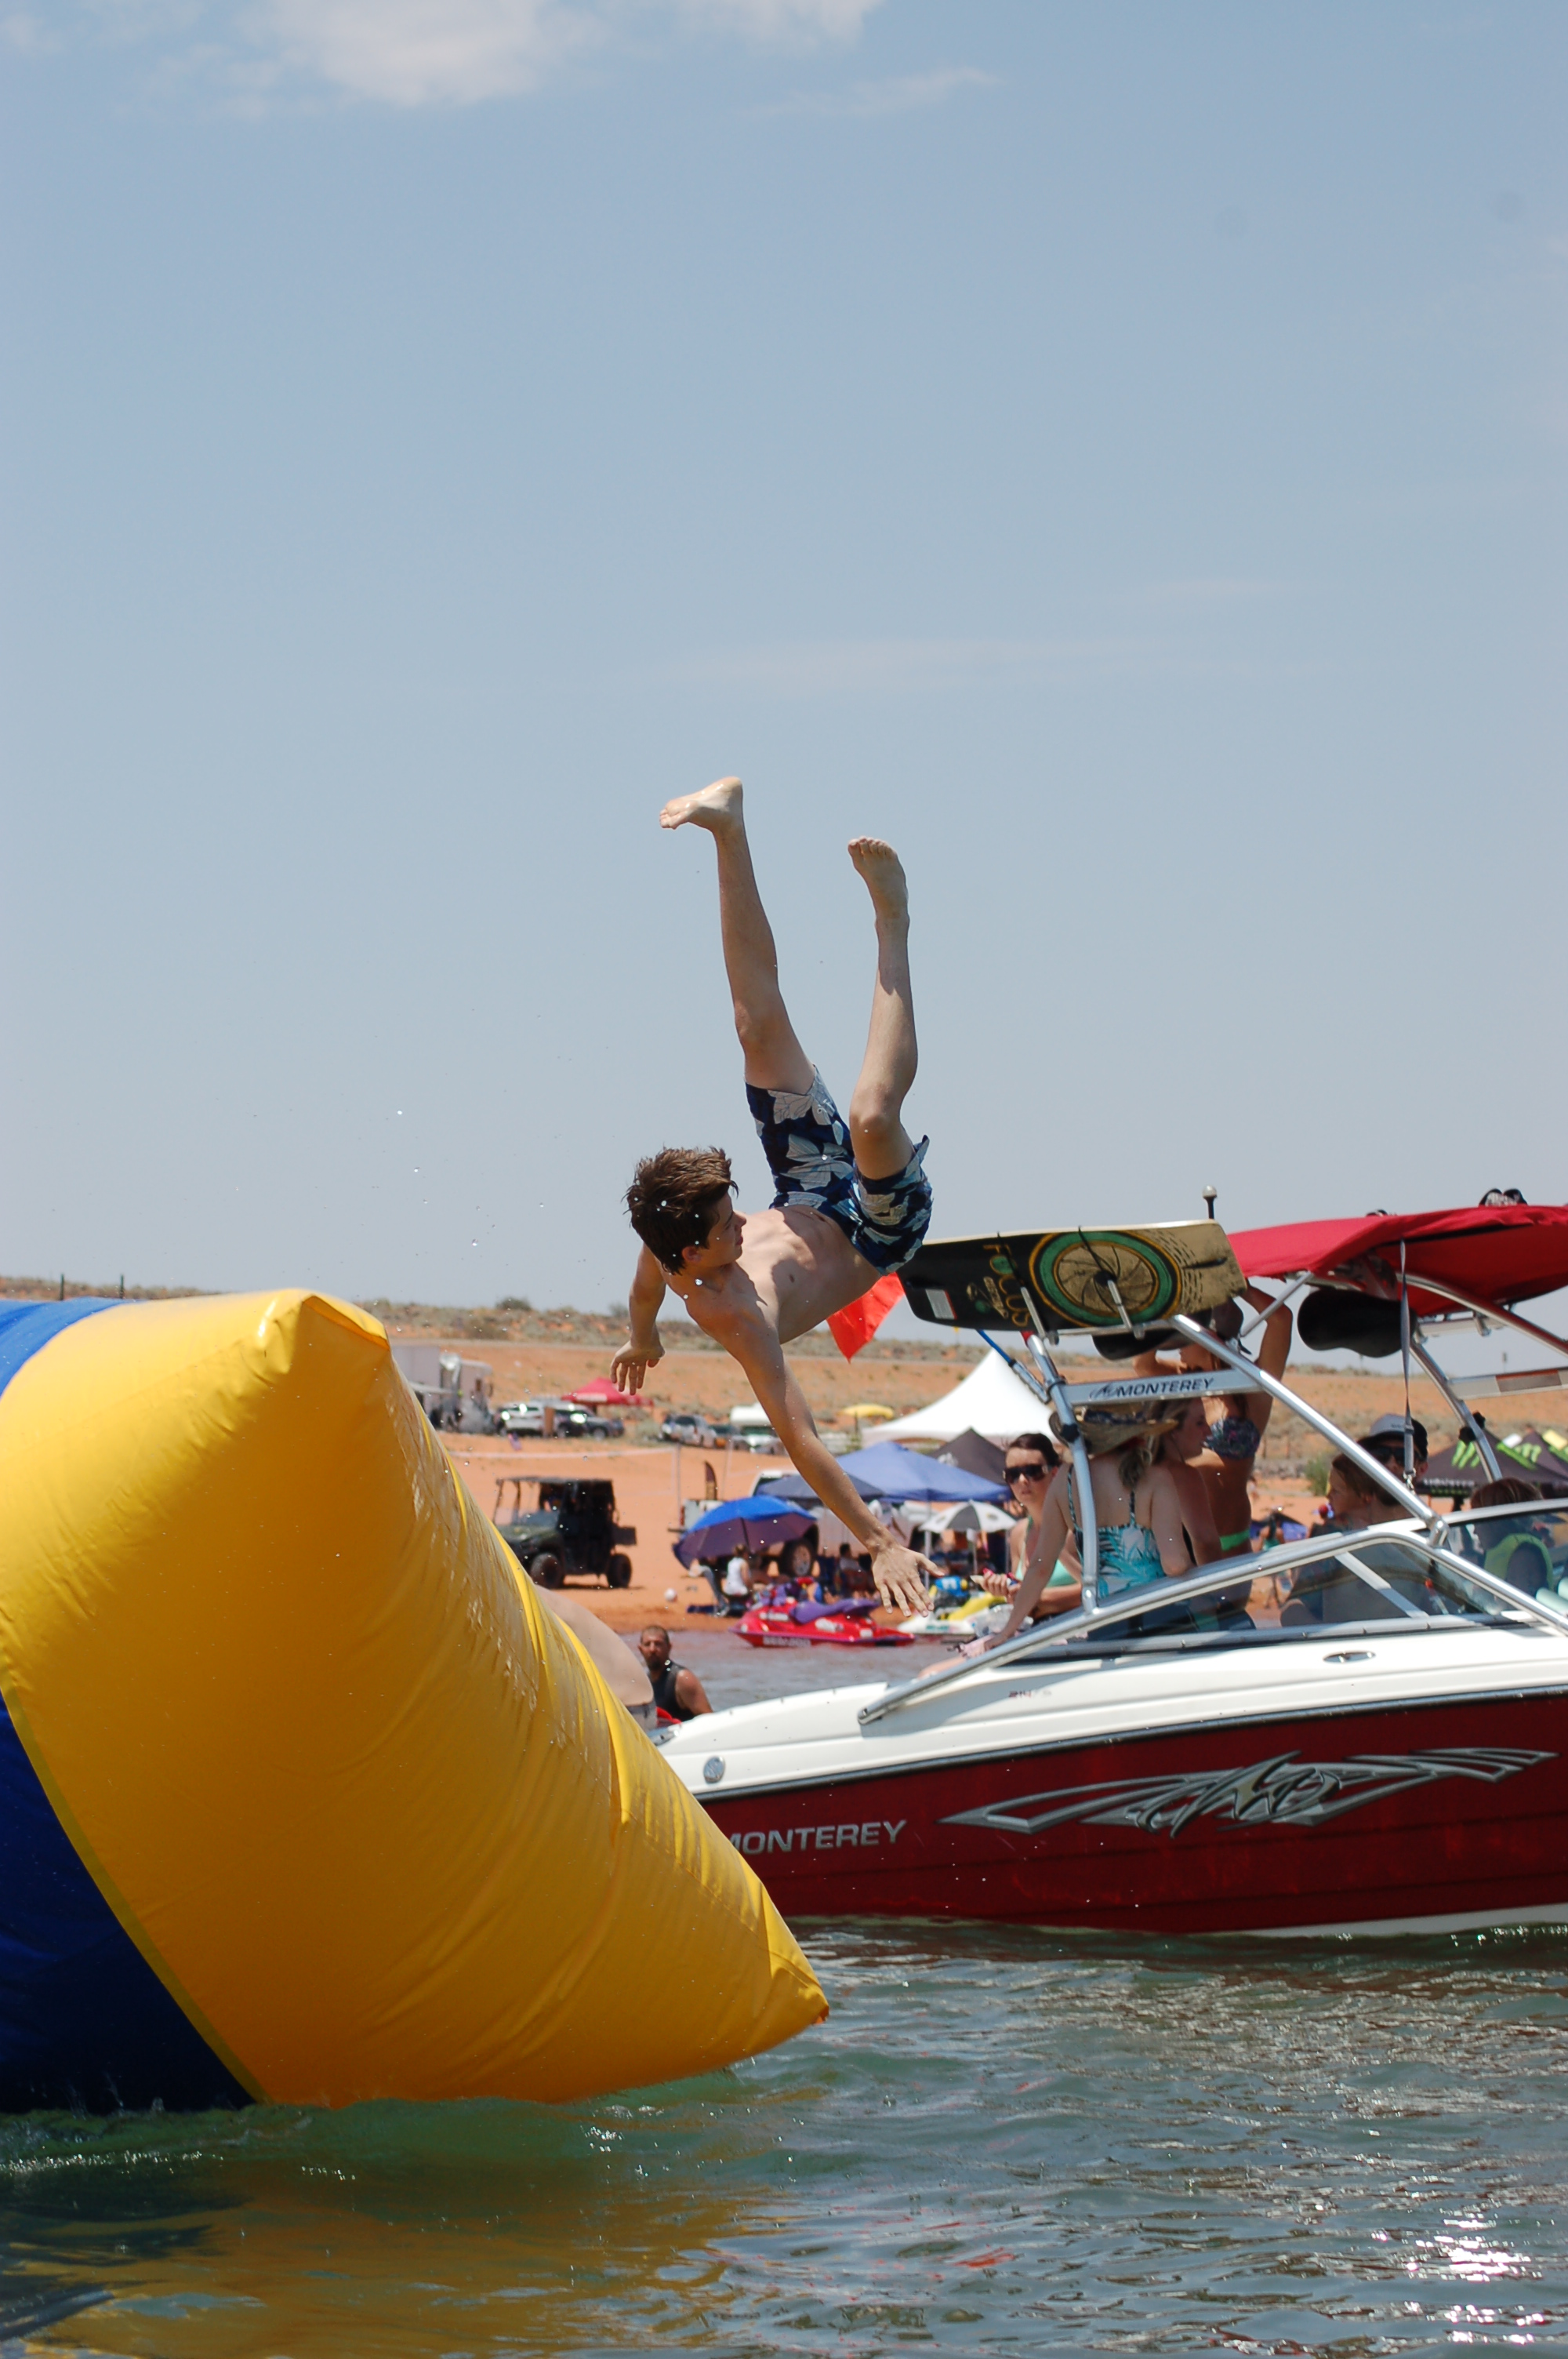 At the 2015 event free activities like this blob launcher were provided for spectators at the Pro Watercross Tour held at Sand Hollow State Park, Utah, June 27, 2015 | Photo by Hollie Reina, St. George News